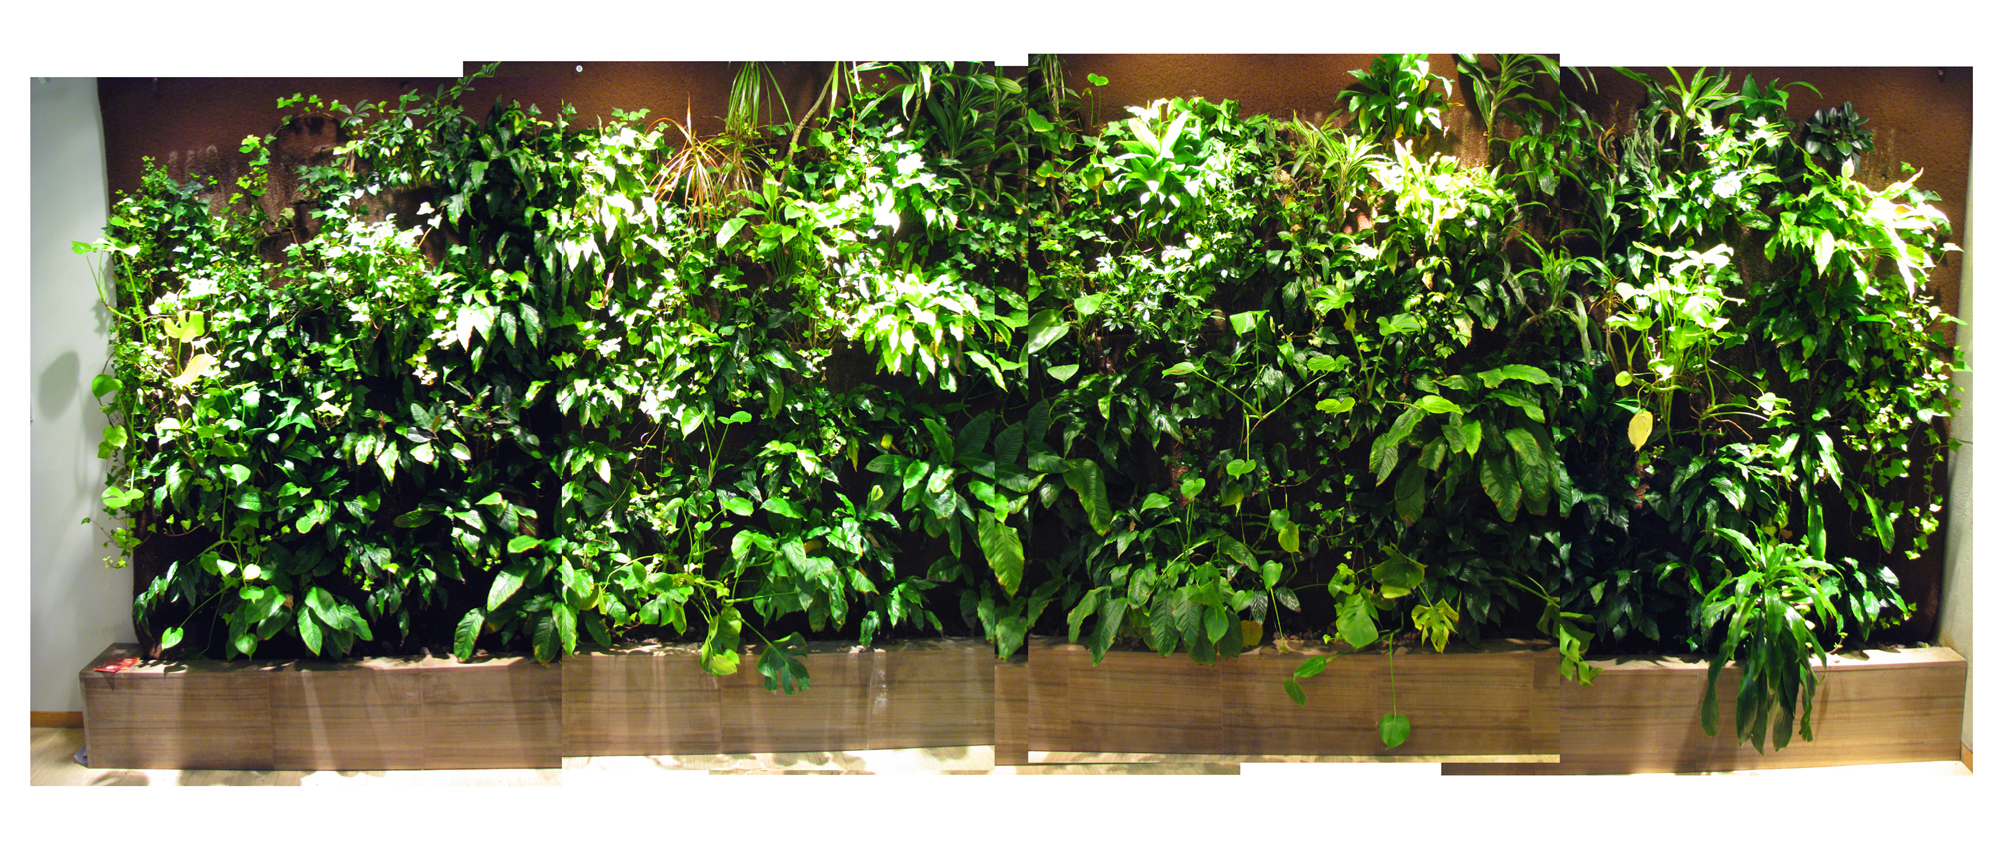 University of Toronto's Living wall